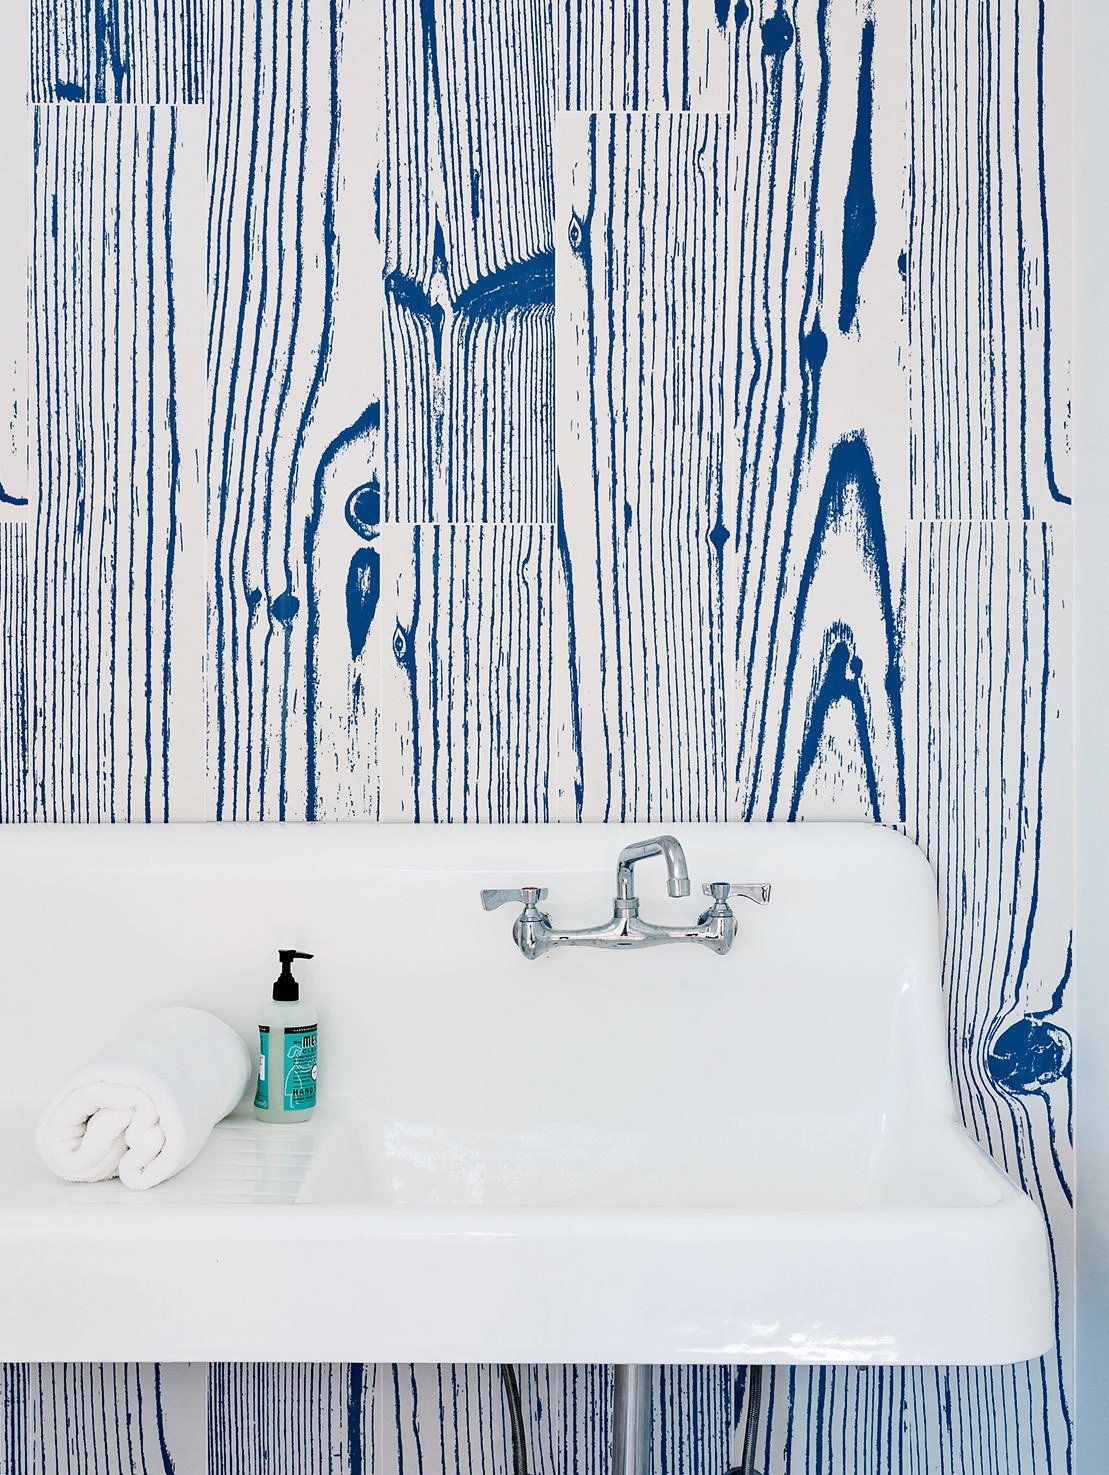 White-and-blue, wood-grain–patterned UonUon tiles by 14oraitaliana line the bathroom walls in a loft above the garage.